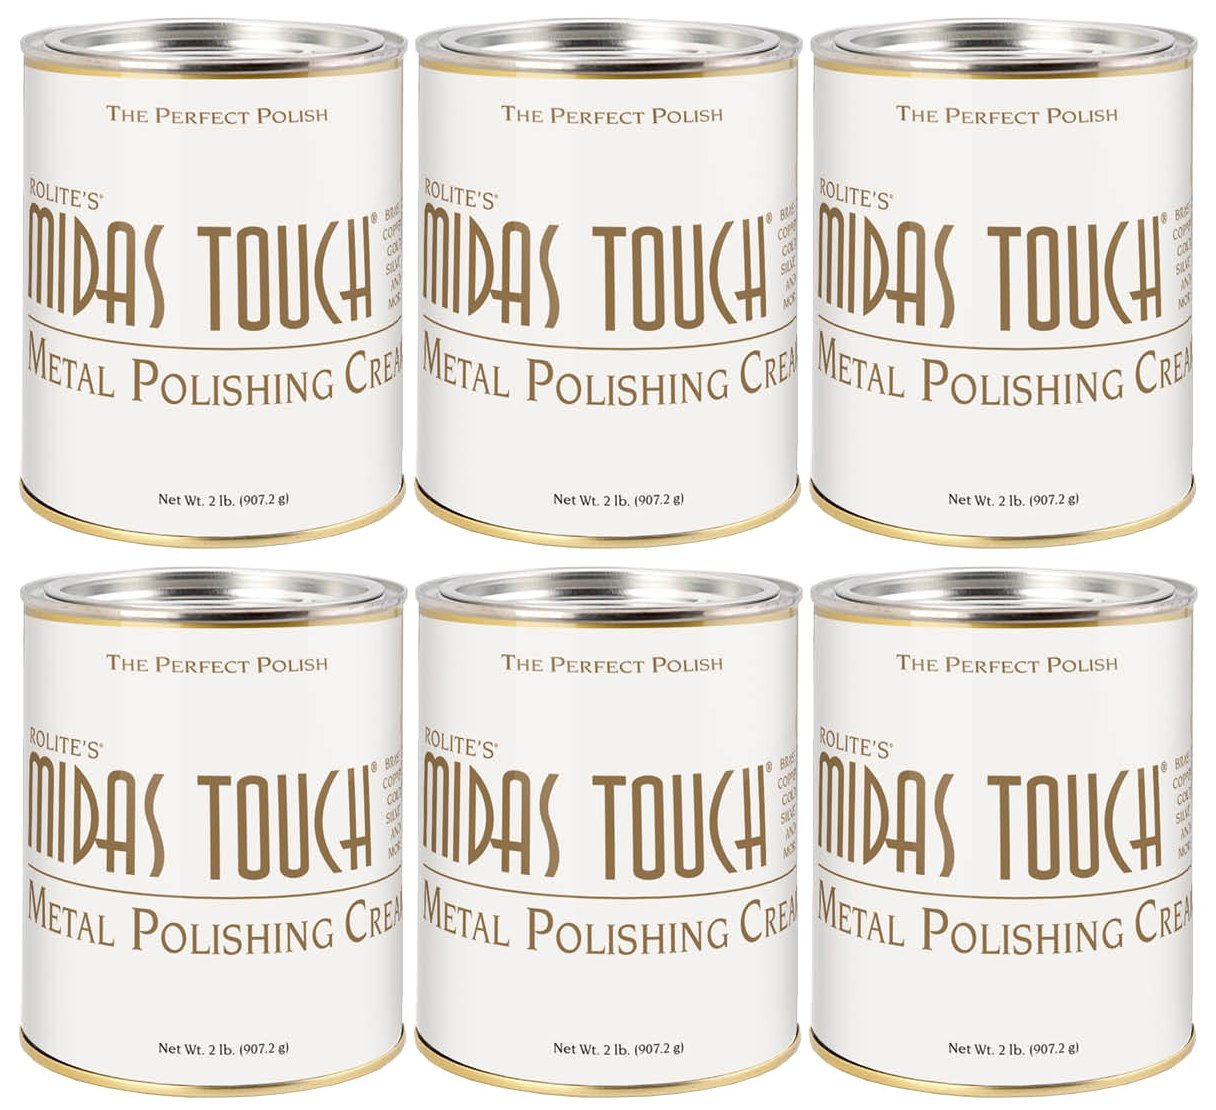 Midas Touch Metal Polishing Cream – 2lb, Cleaner & Polishing Rouge for Sterling Silver, Gold, Brass & Other Metals, 6pack, by Rolite